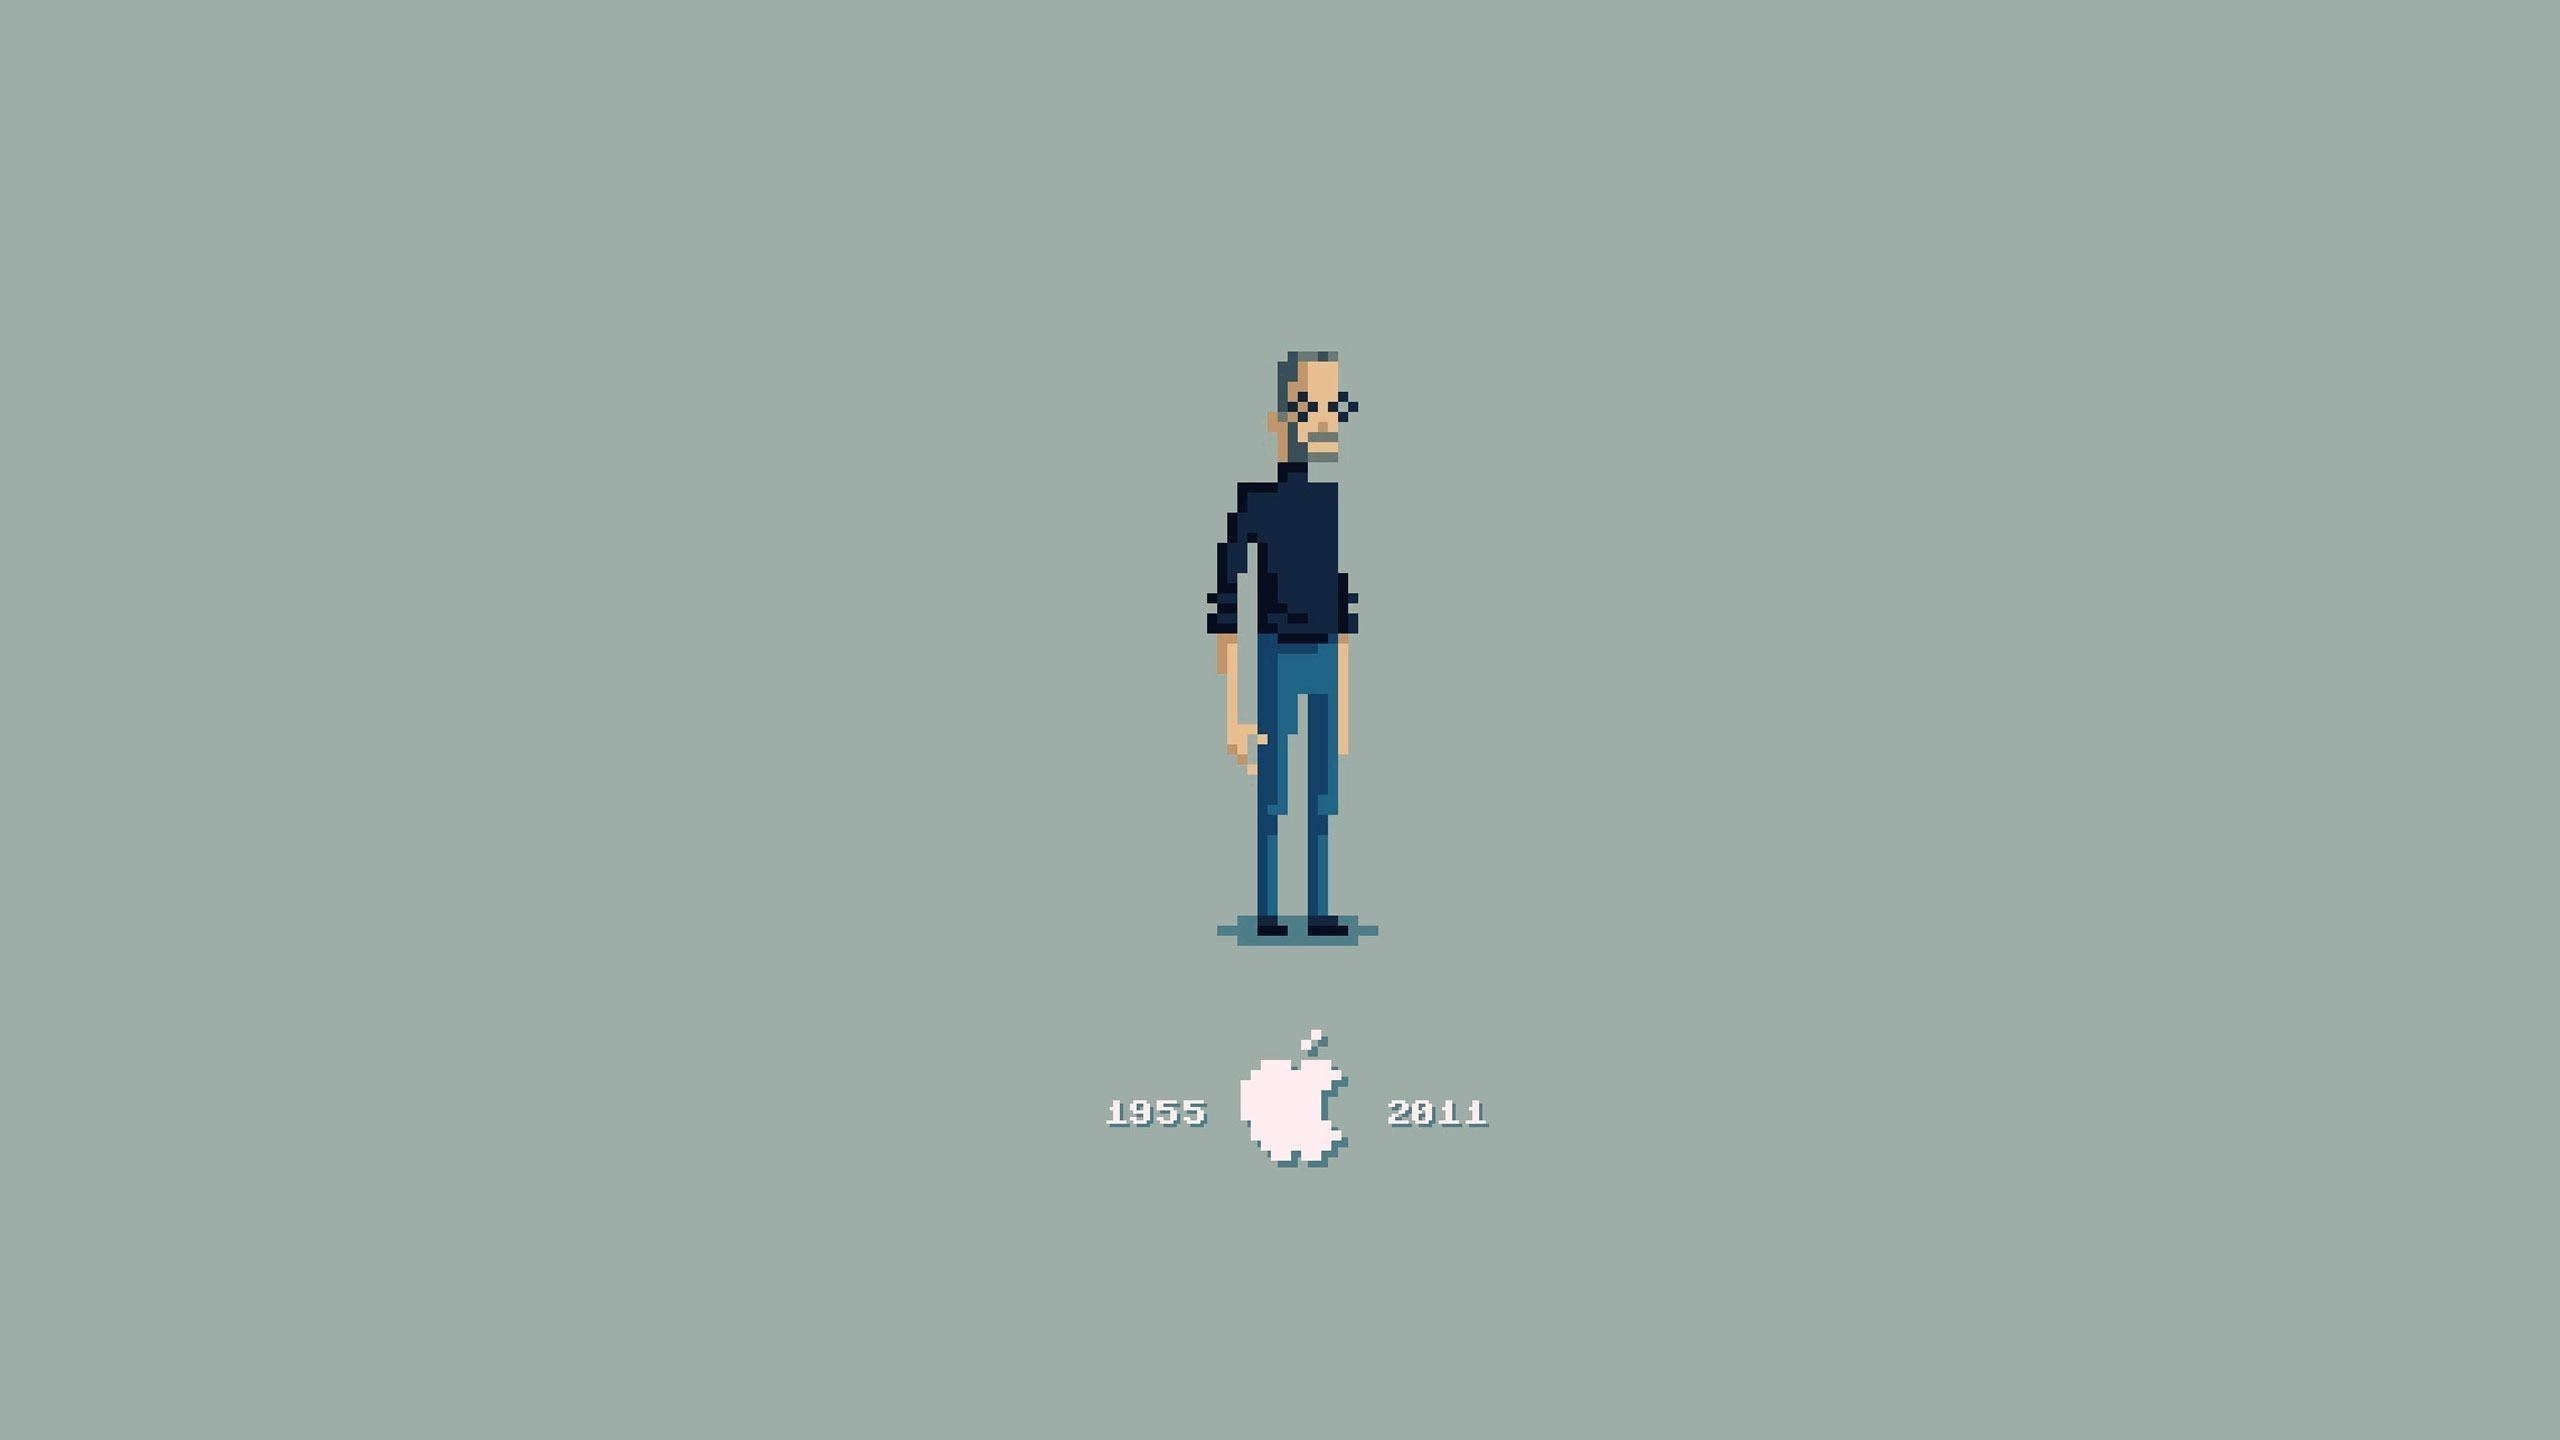 Steve Jobs Pixelated for 2560x1440 HDTV resolution